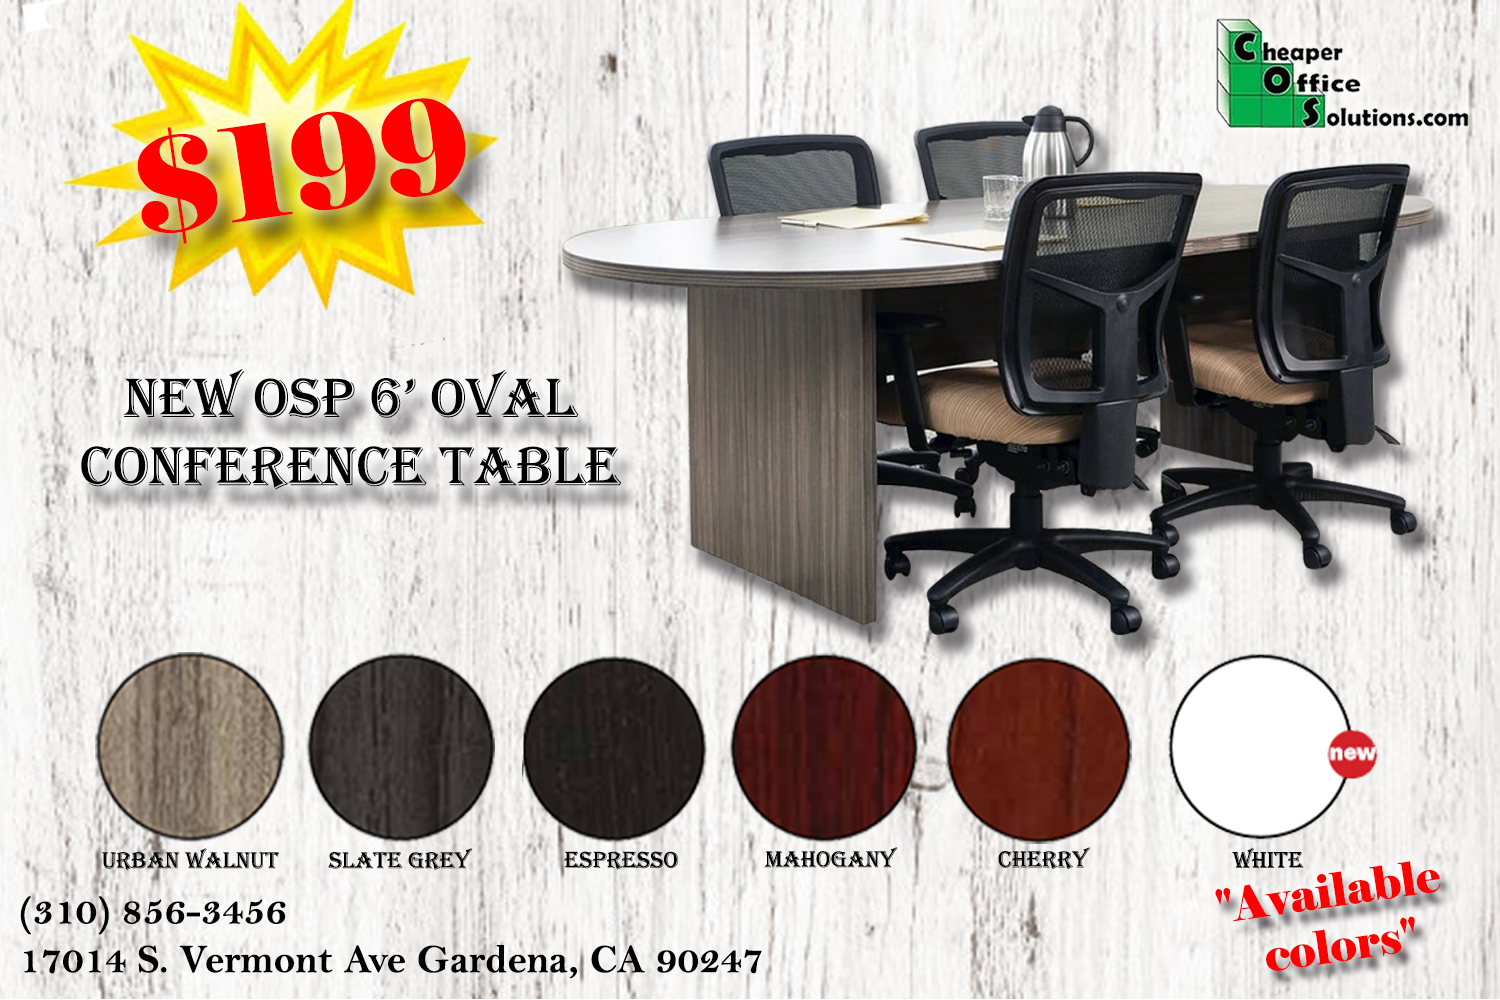 NEW OSP 6' Conference Table